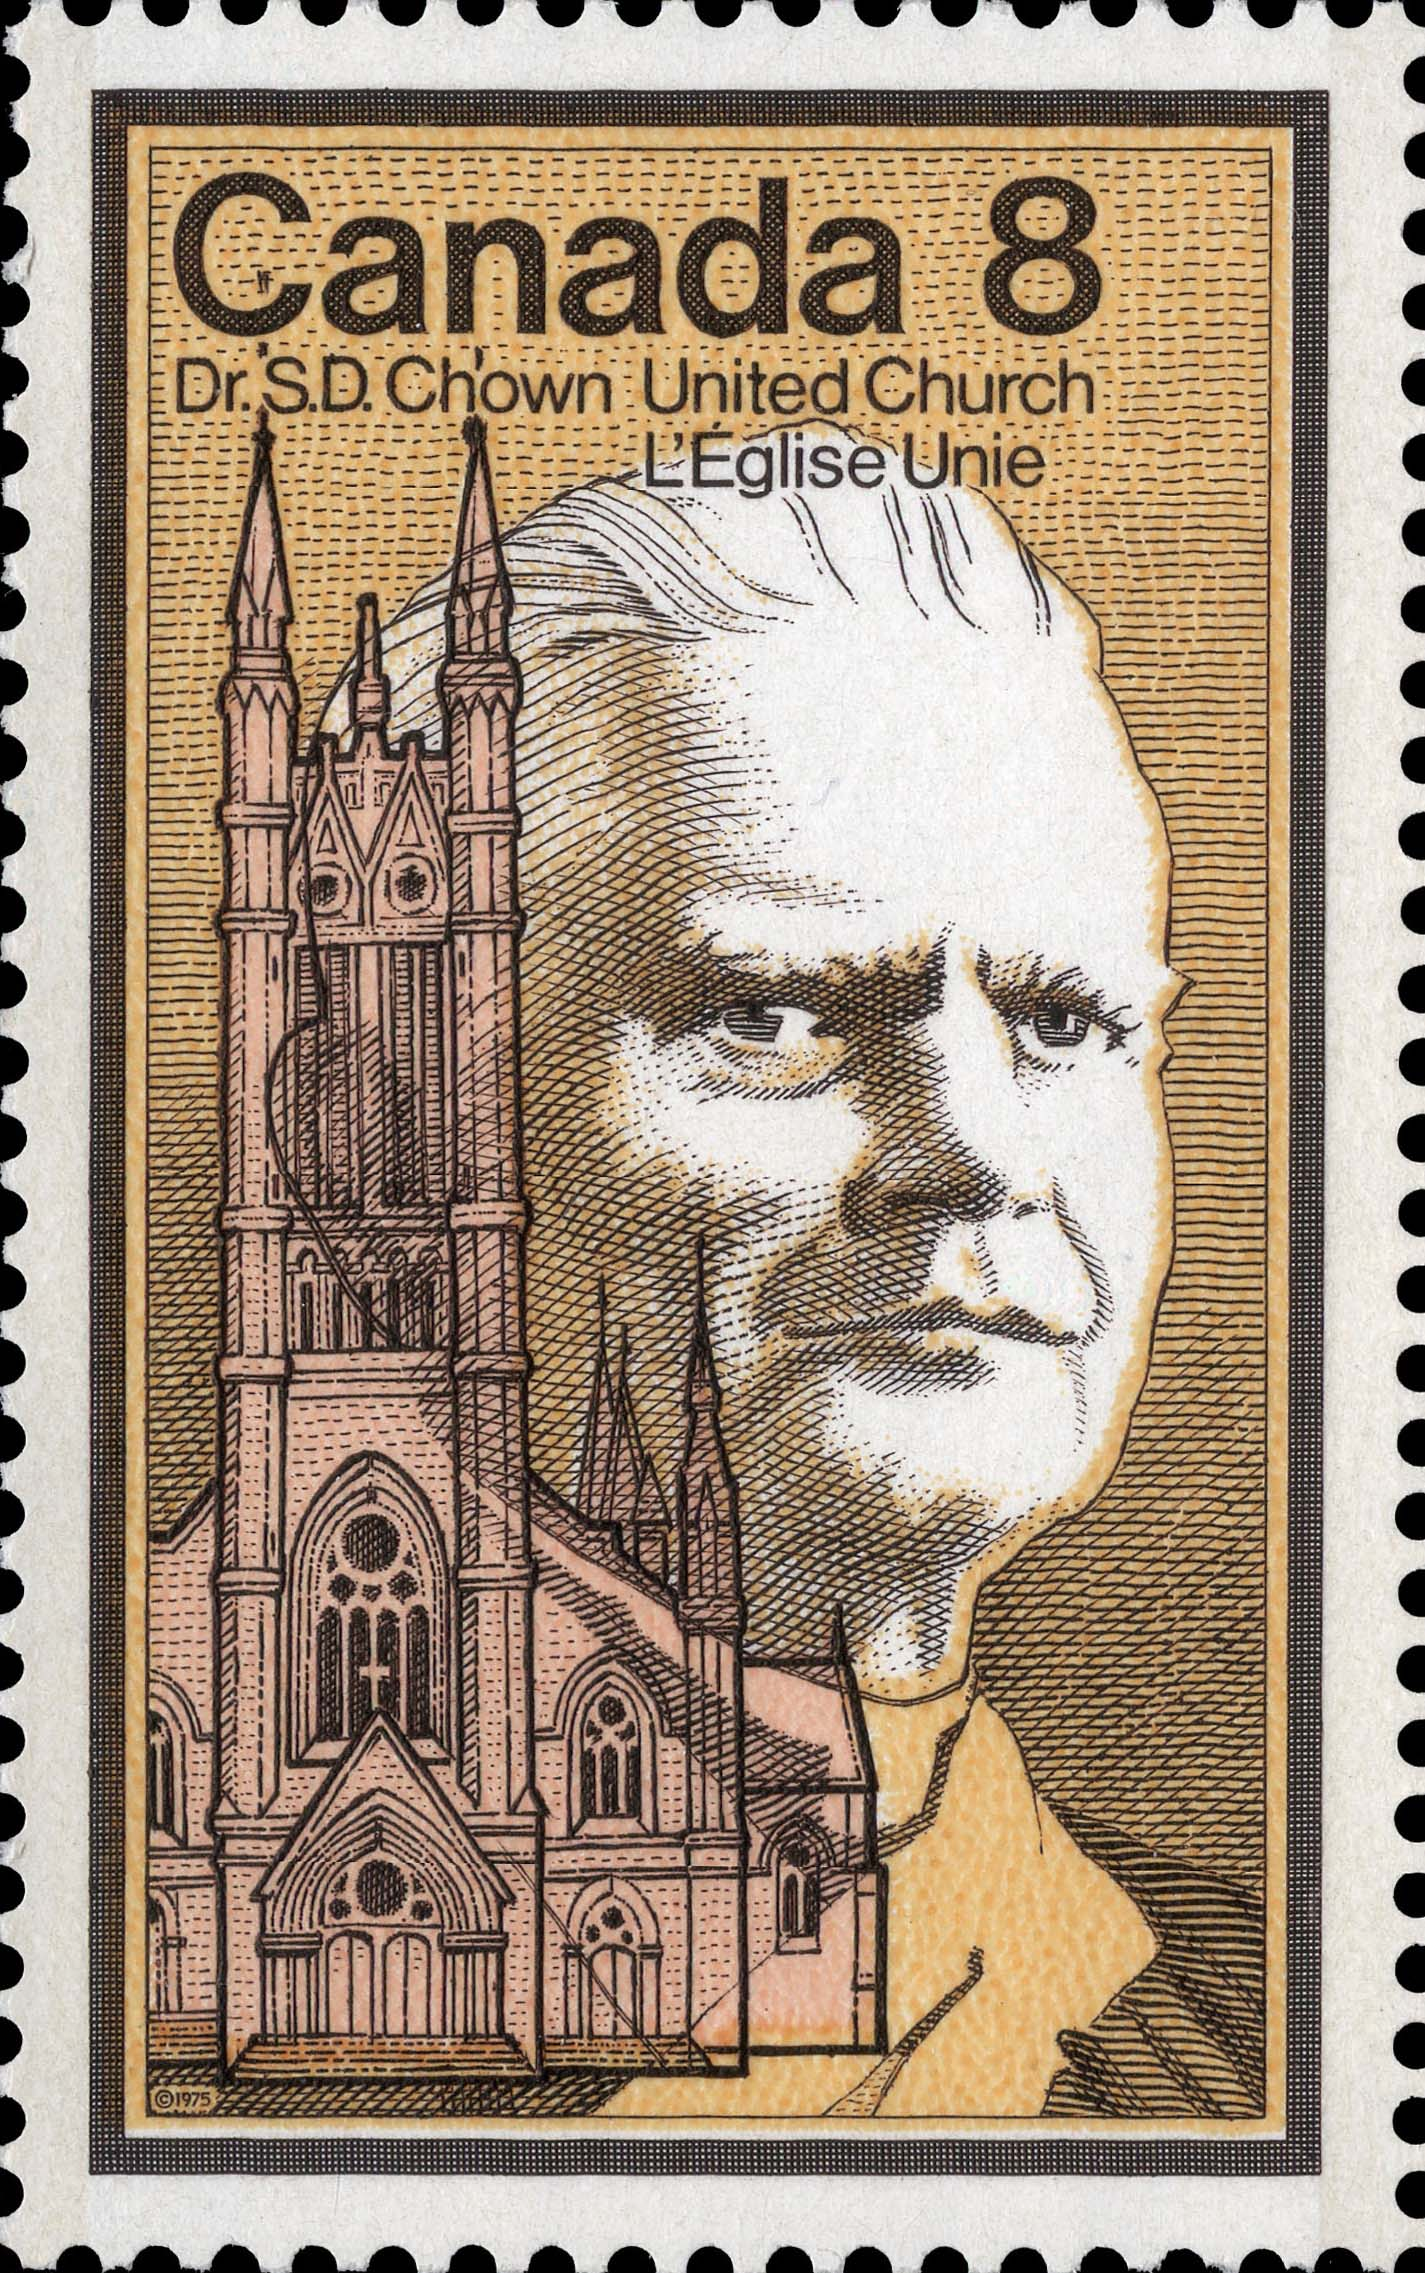 Dr. S.D. Chown, United Church Canada Postage Stamp